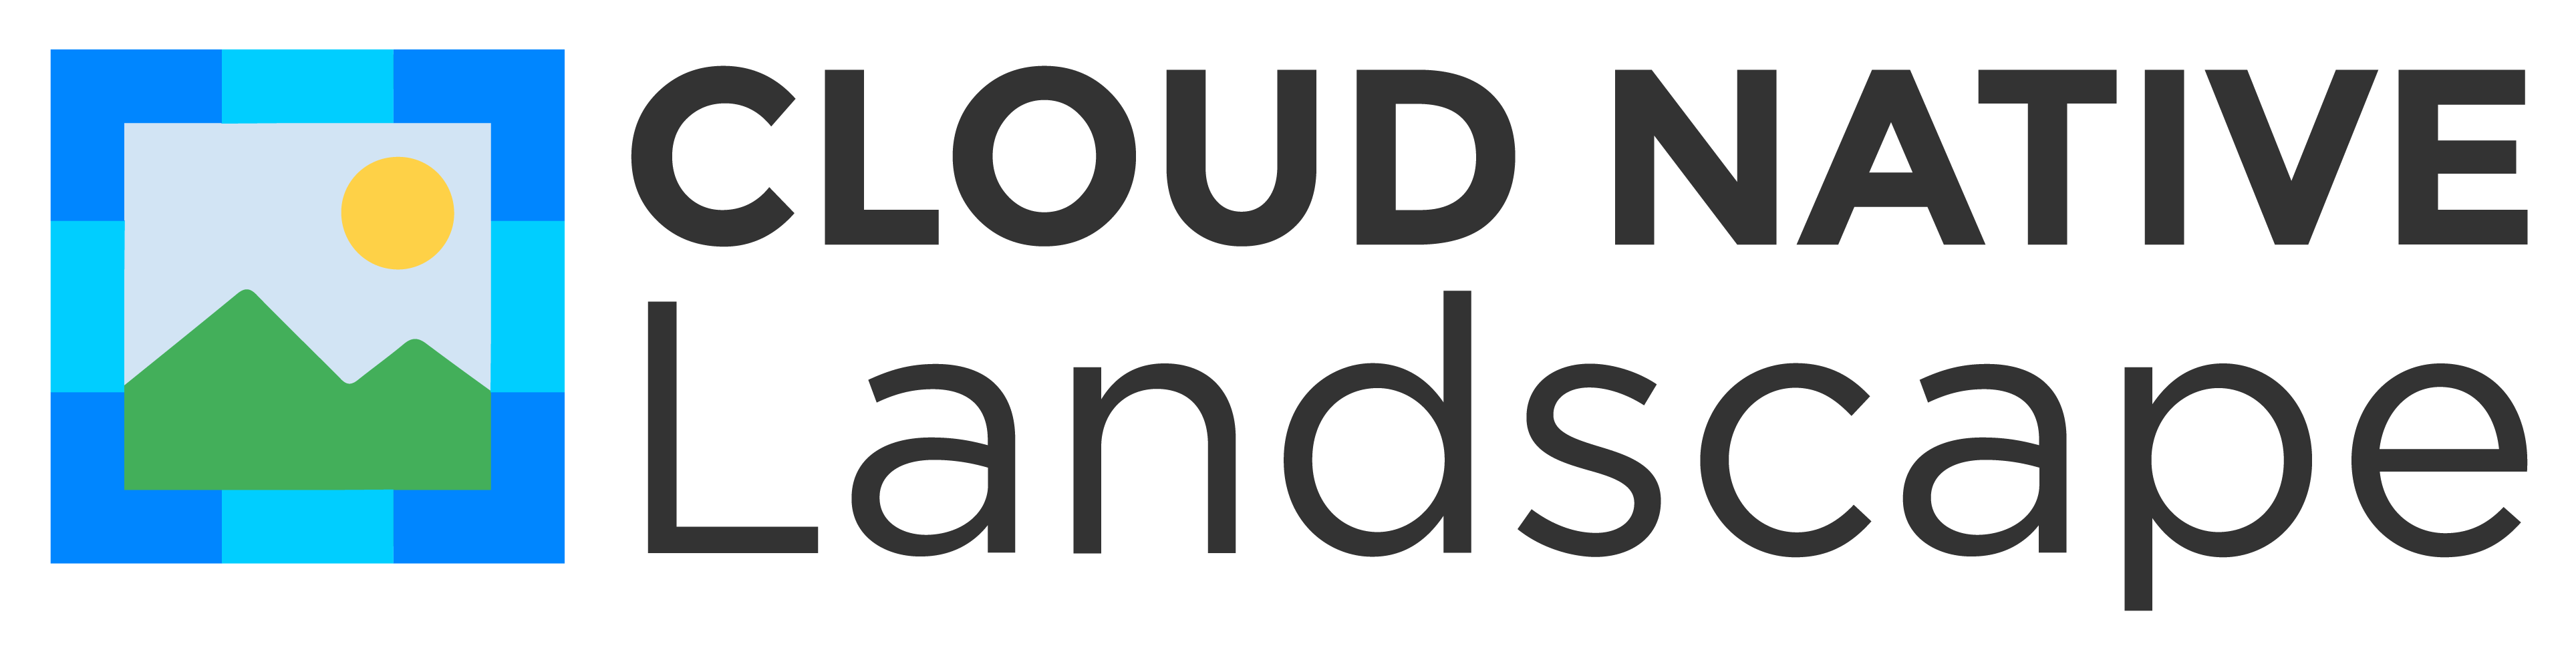 Cloud Native Landscape Logo